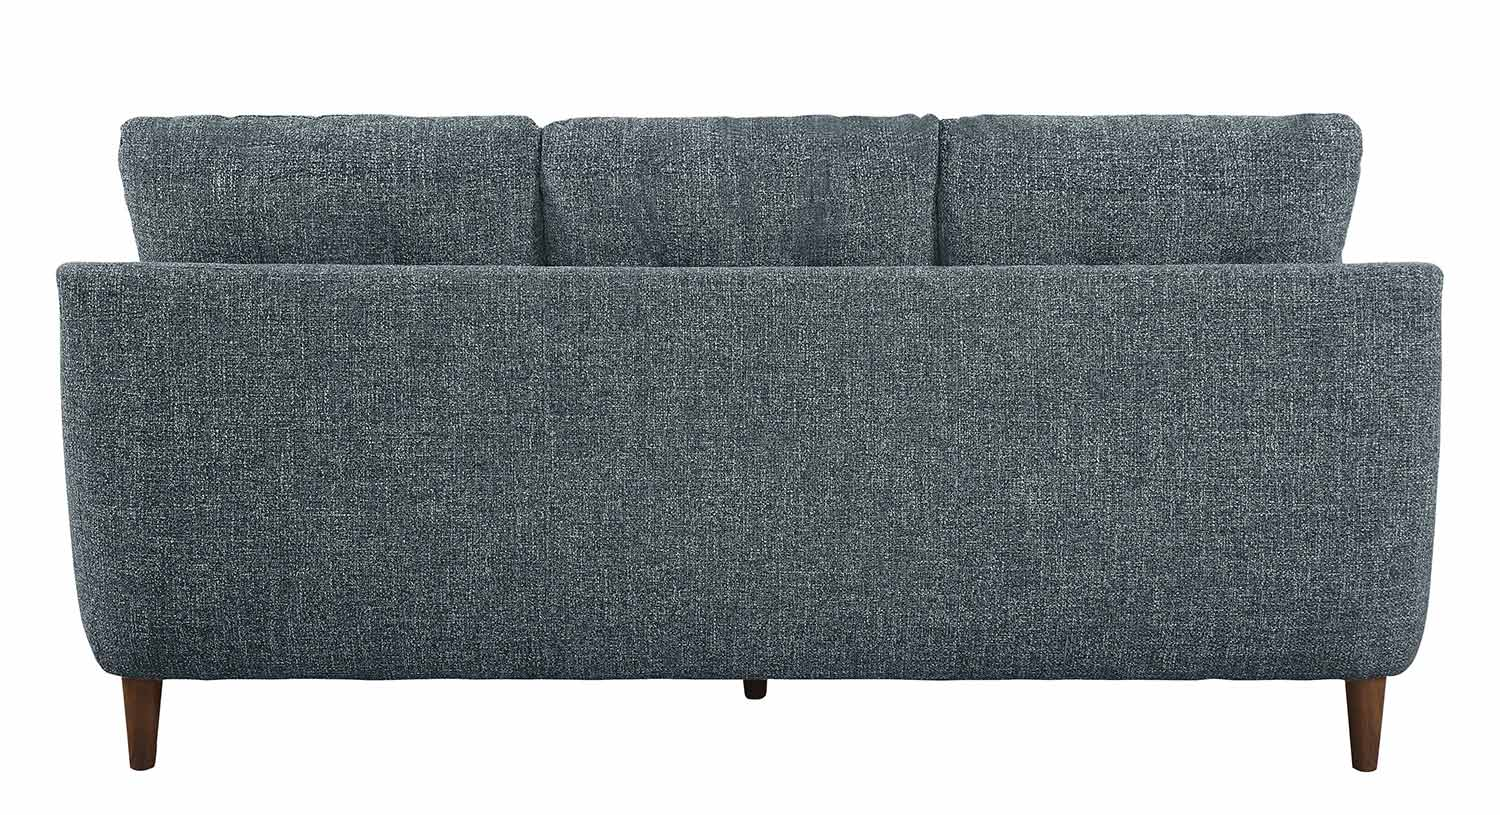 Homelegance Cagle Sofa - Gray